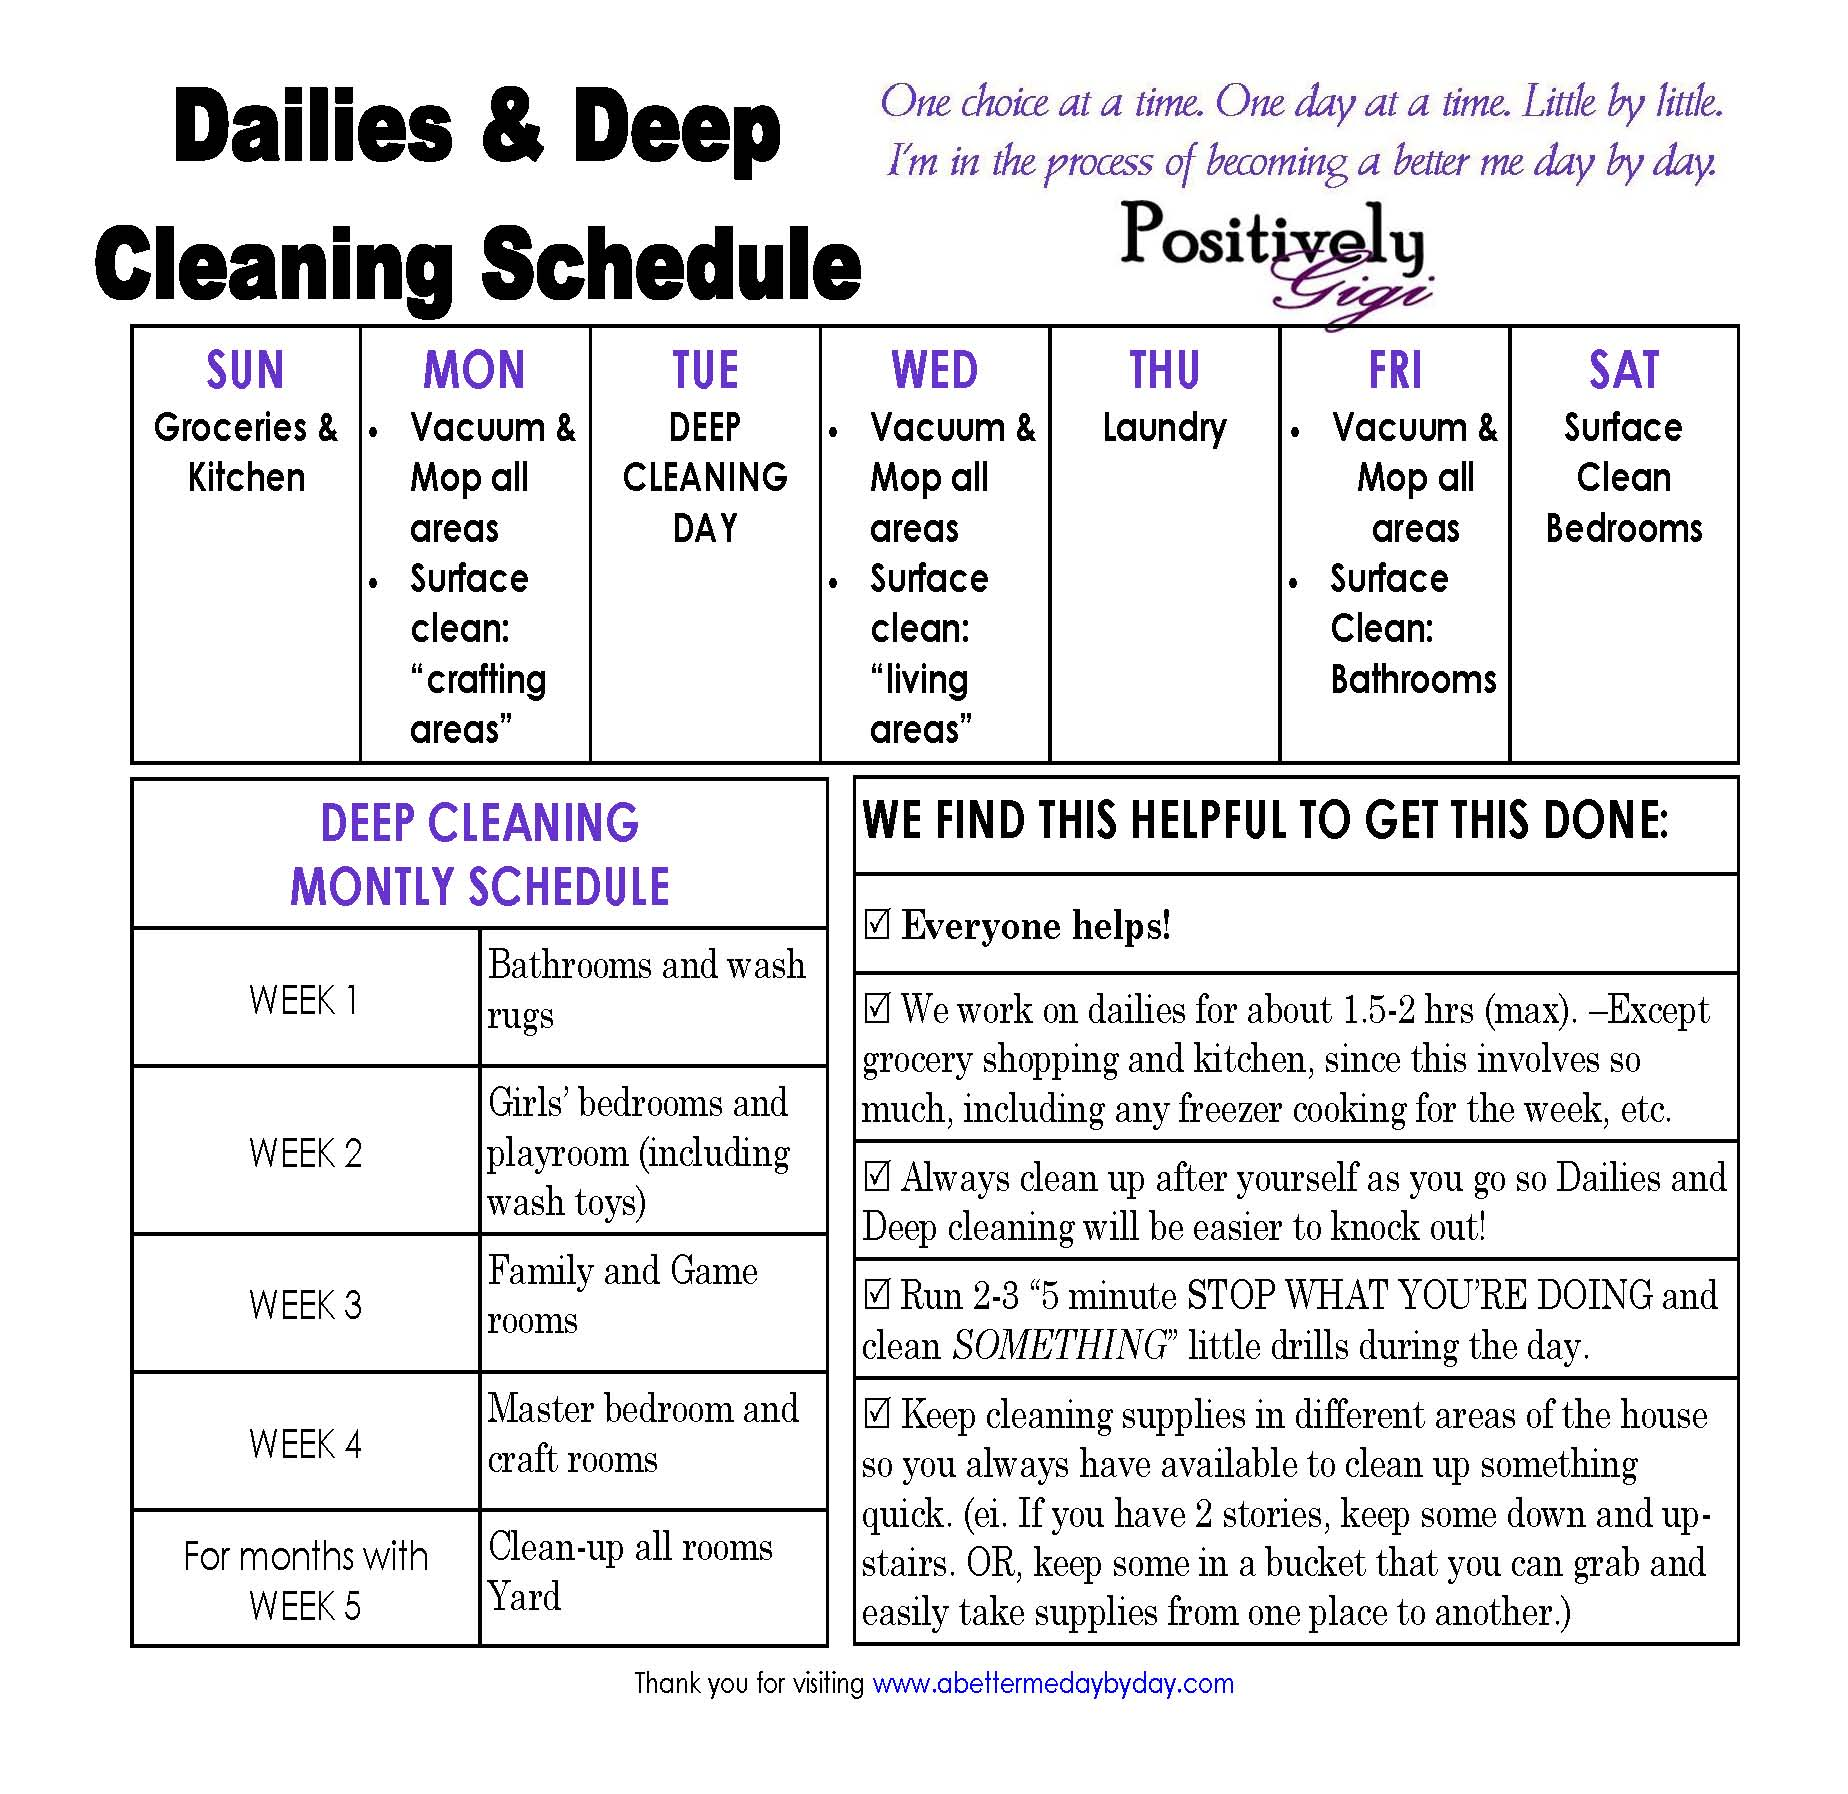 Similiar Day Care Cleaning Checklist Templates Keywords